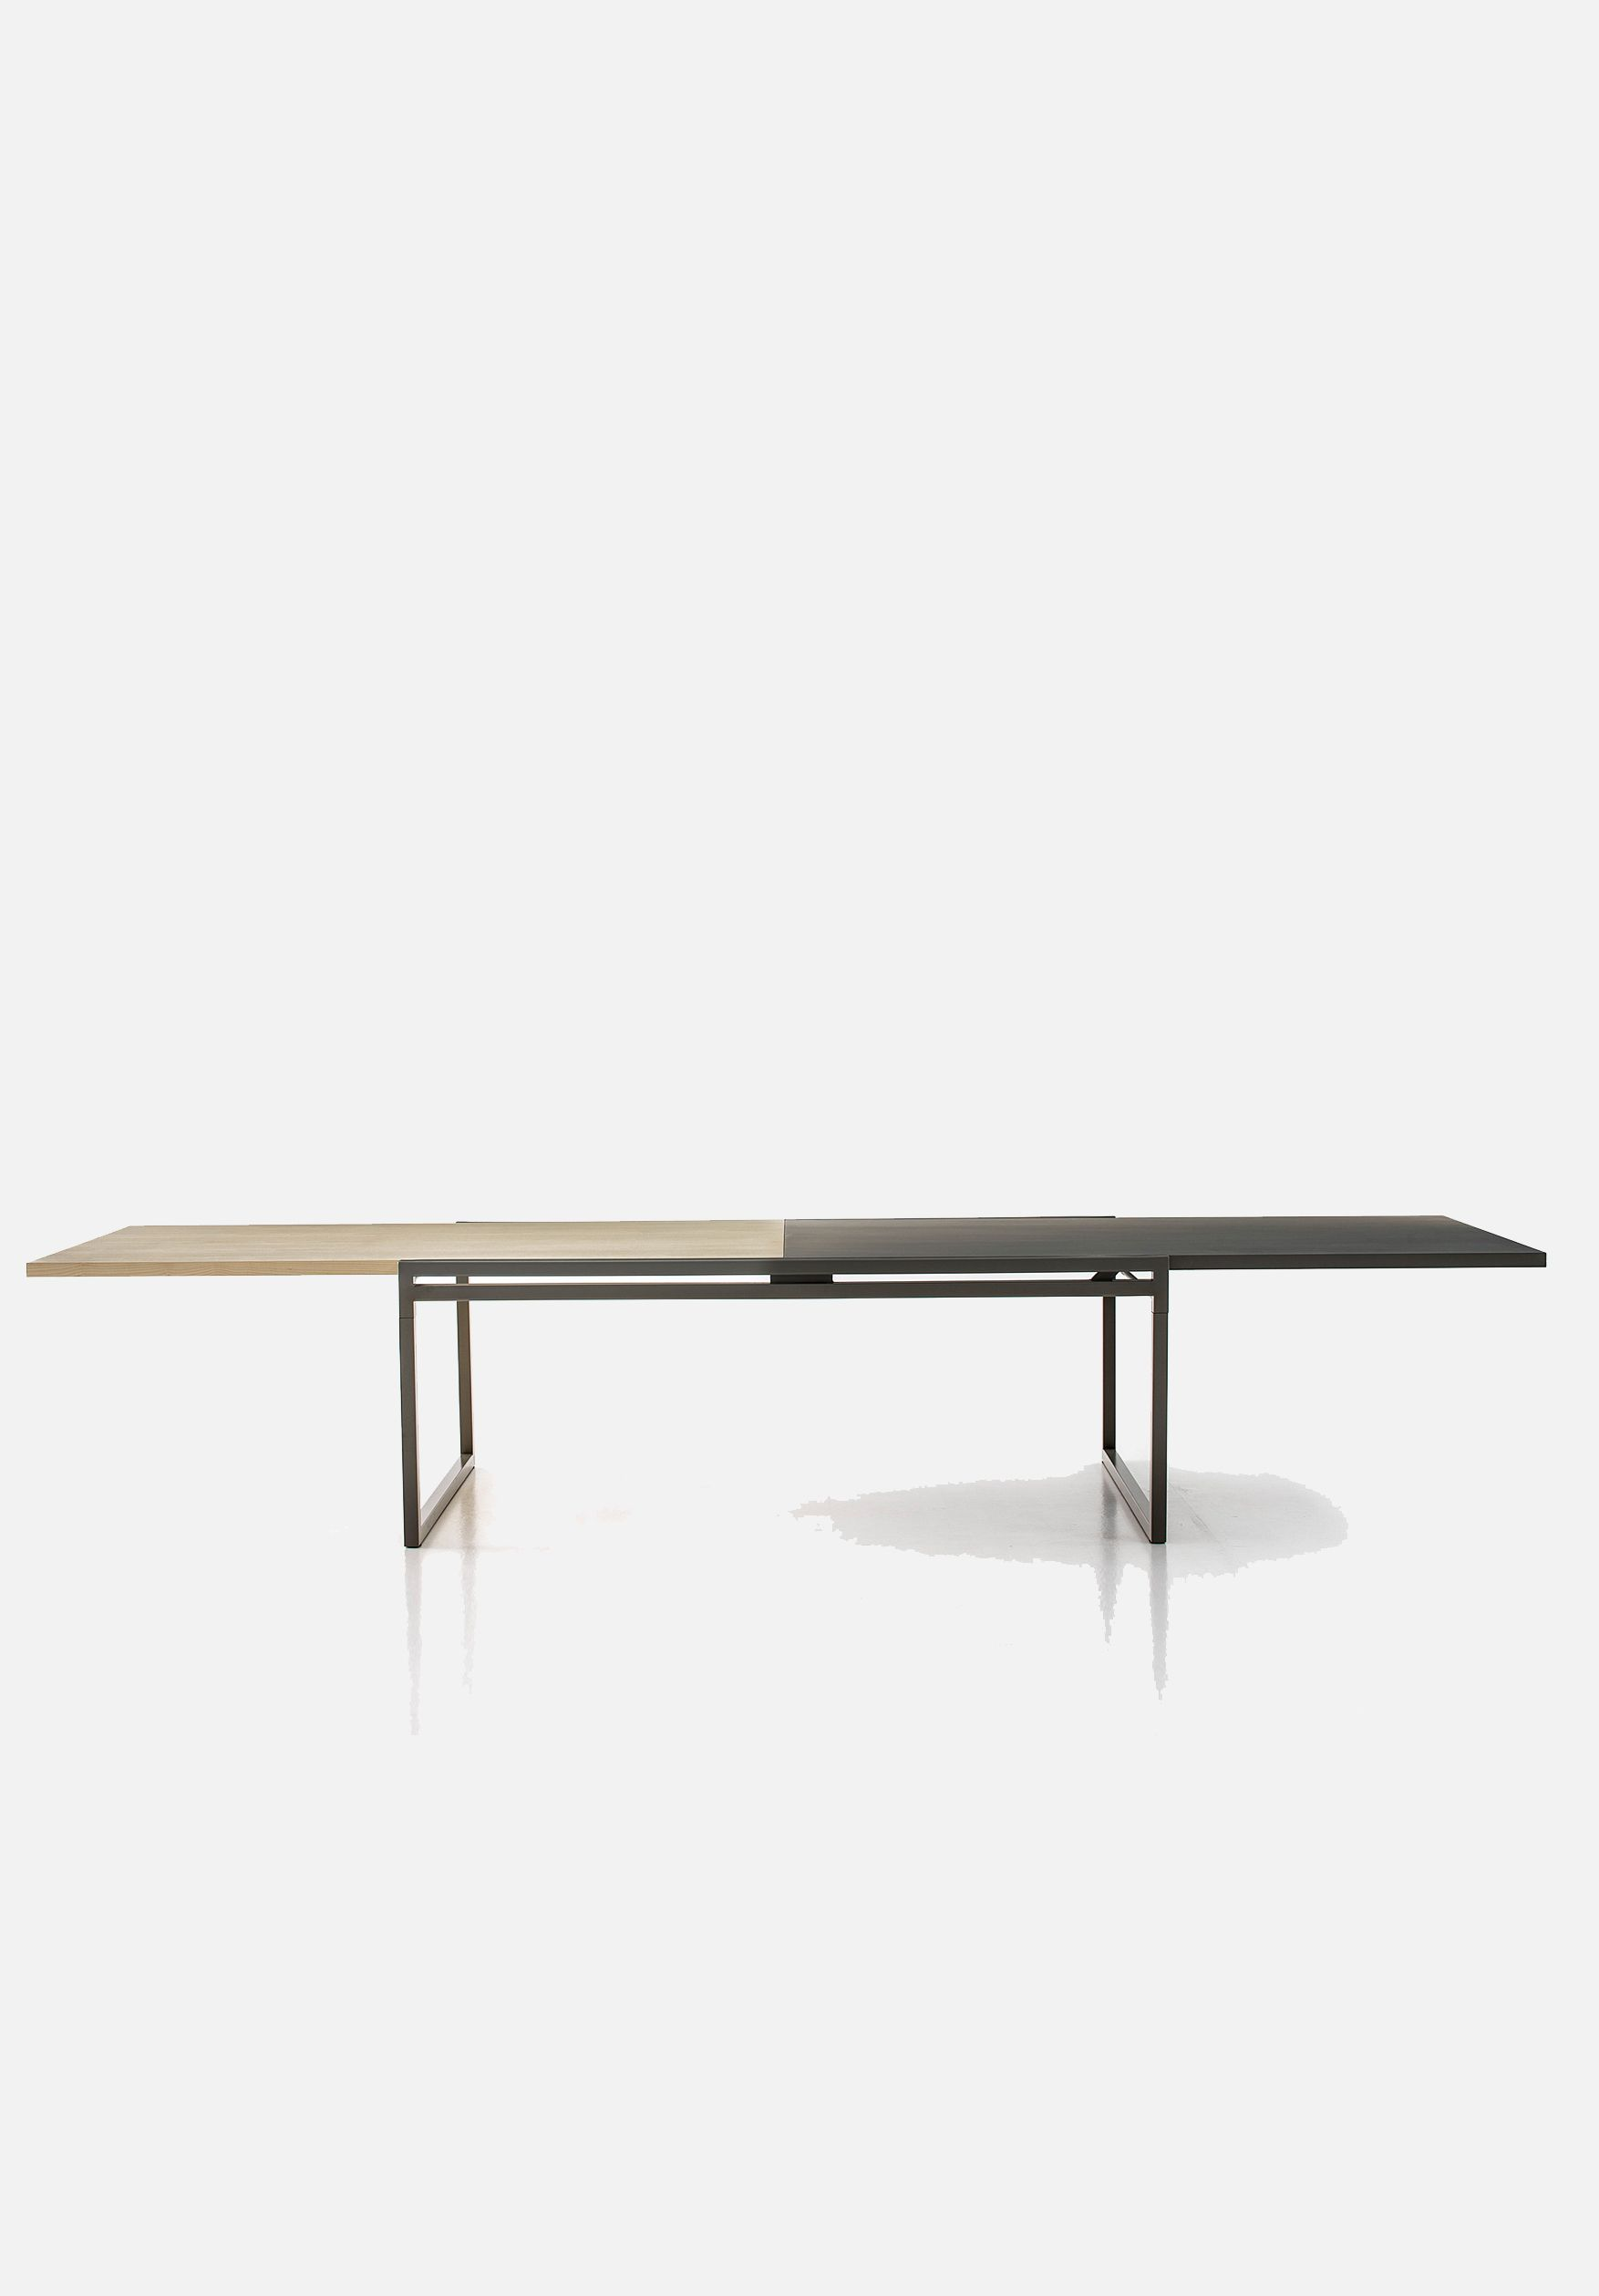 Double extending table, Moroso | Communal Tables ...